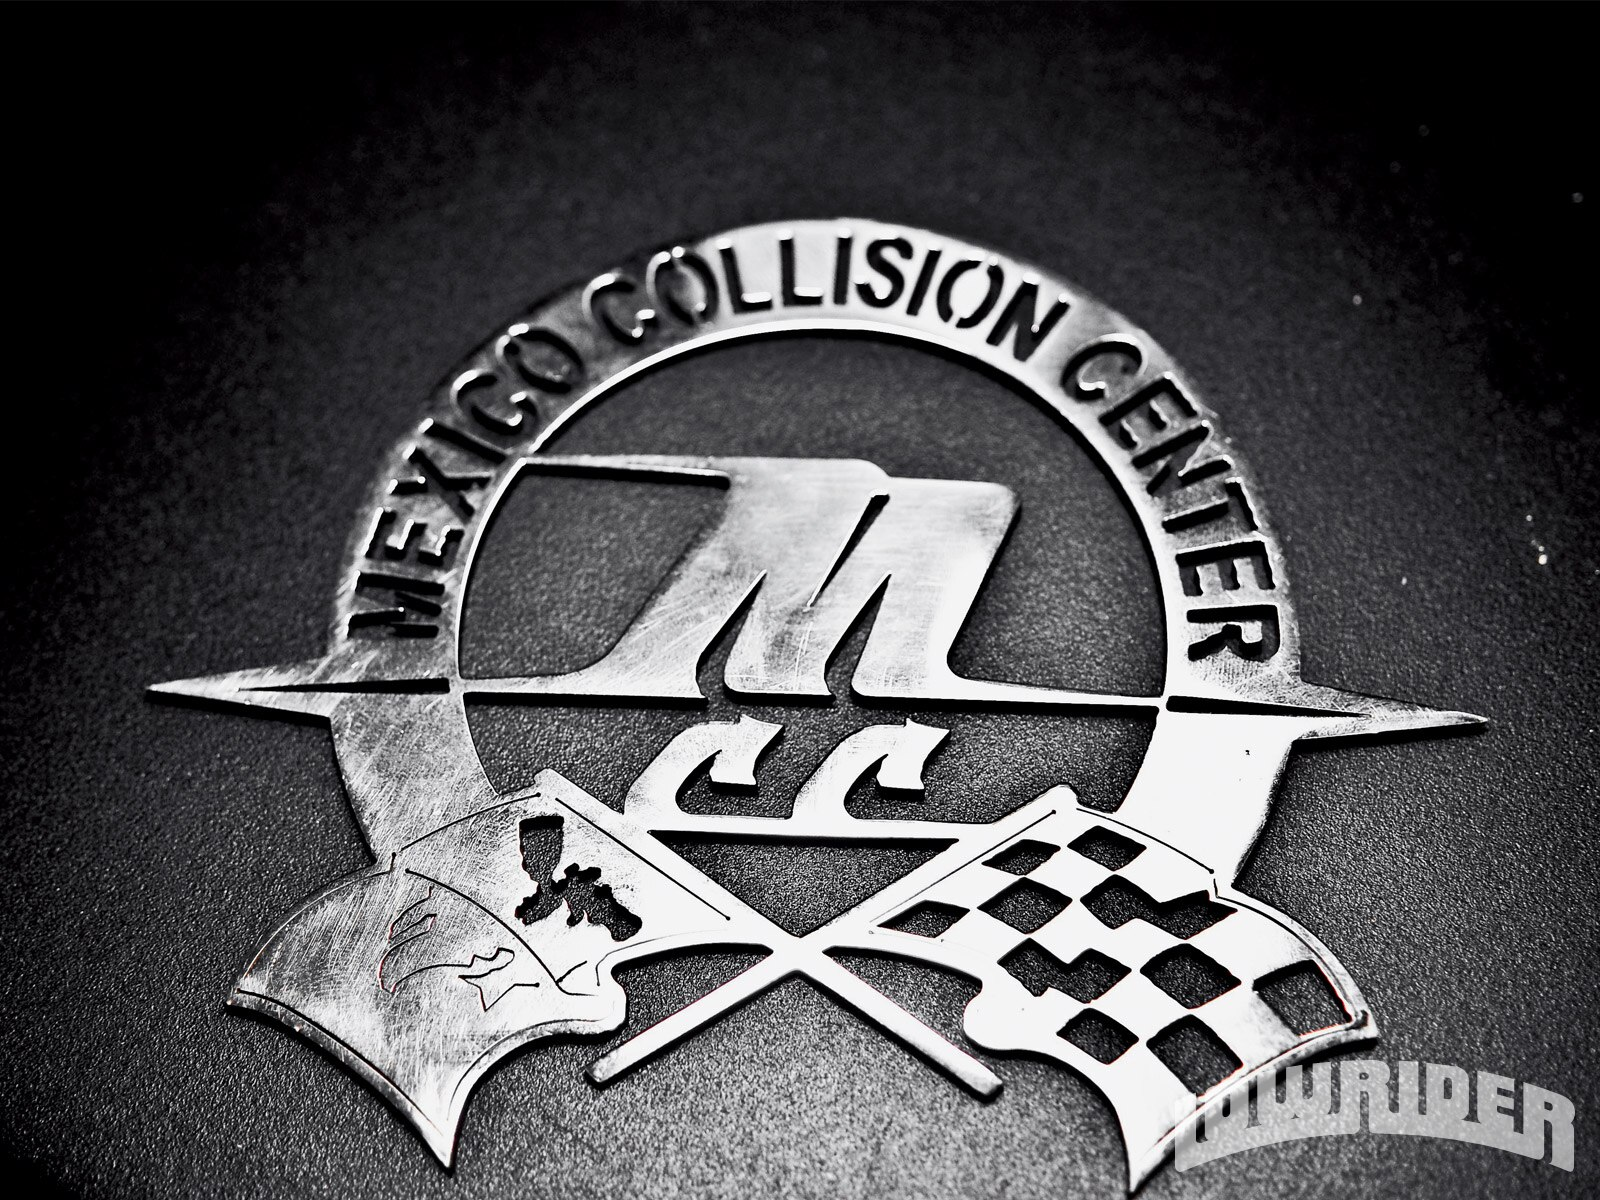 lrmp_0911_01-mexico_collision_center-emblem4